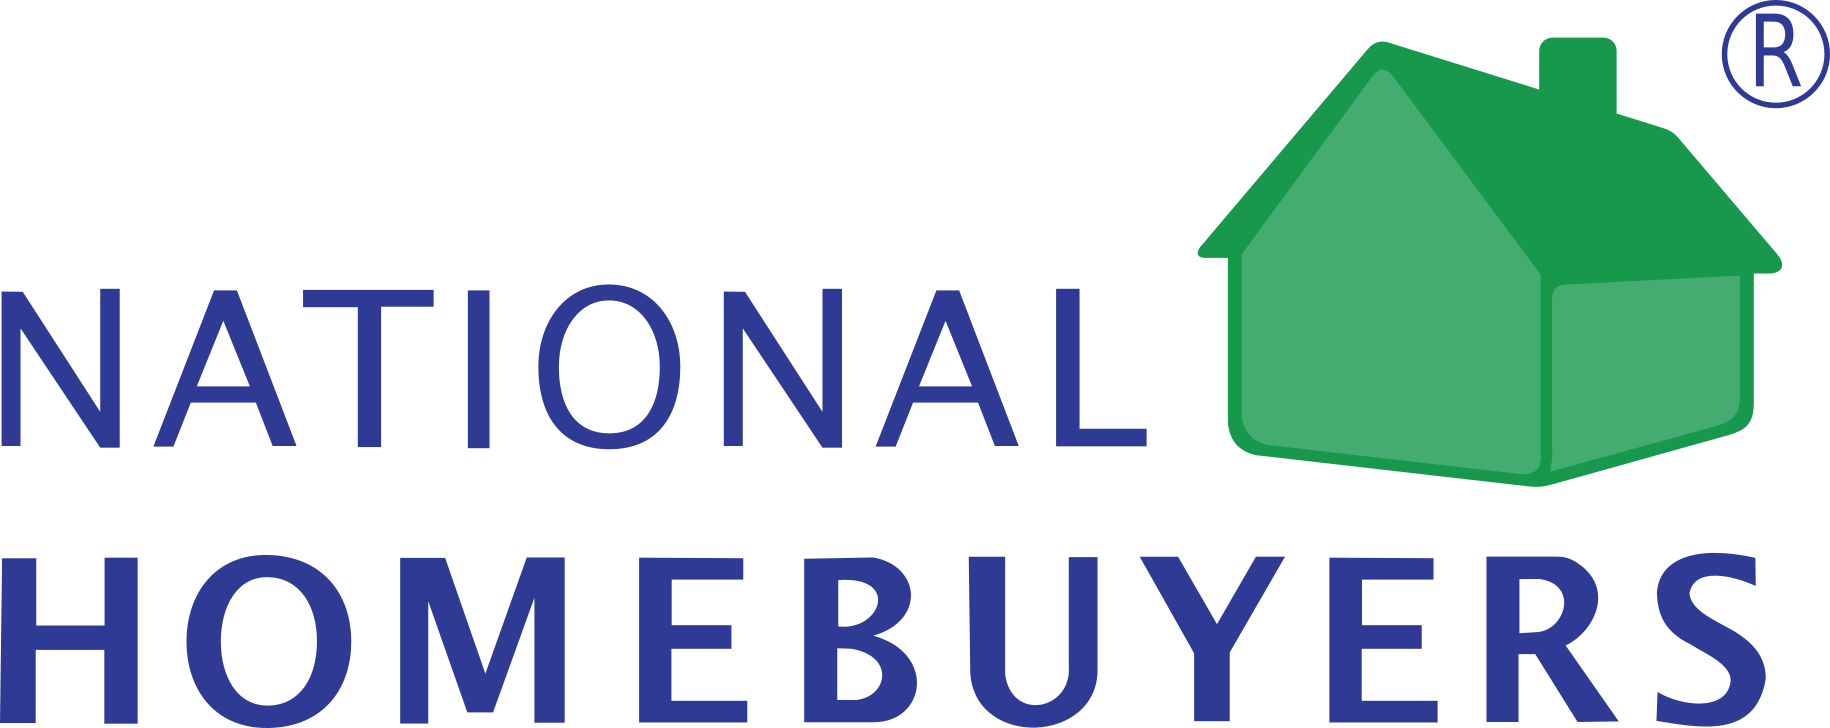 National Homebuyers Logo